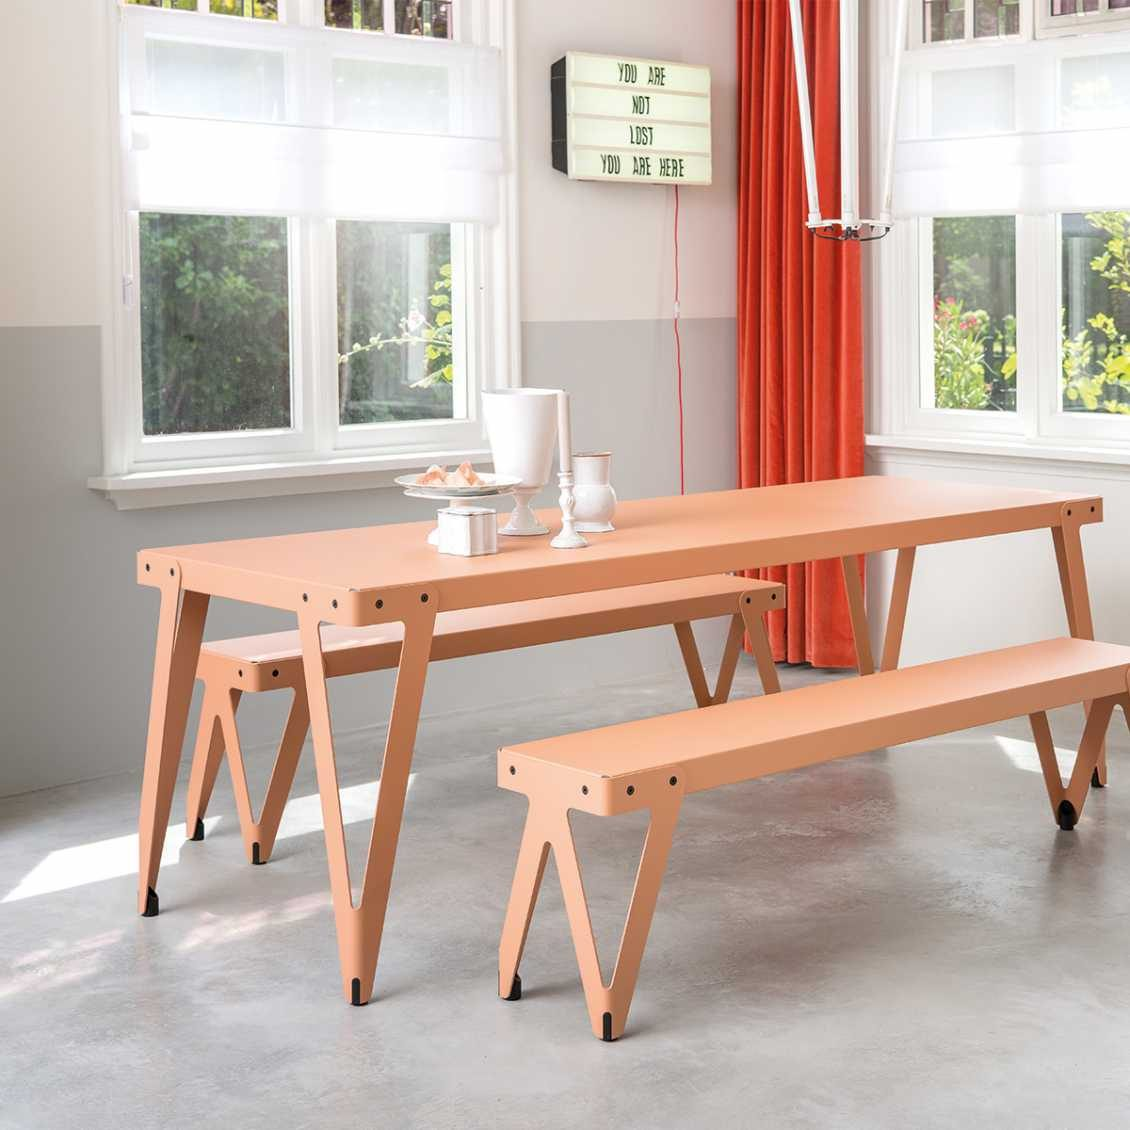 Lloyd Table Tuscan Functionals Lloyd Bench Tuscan Sfeer Dutch Design Online